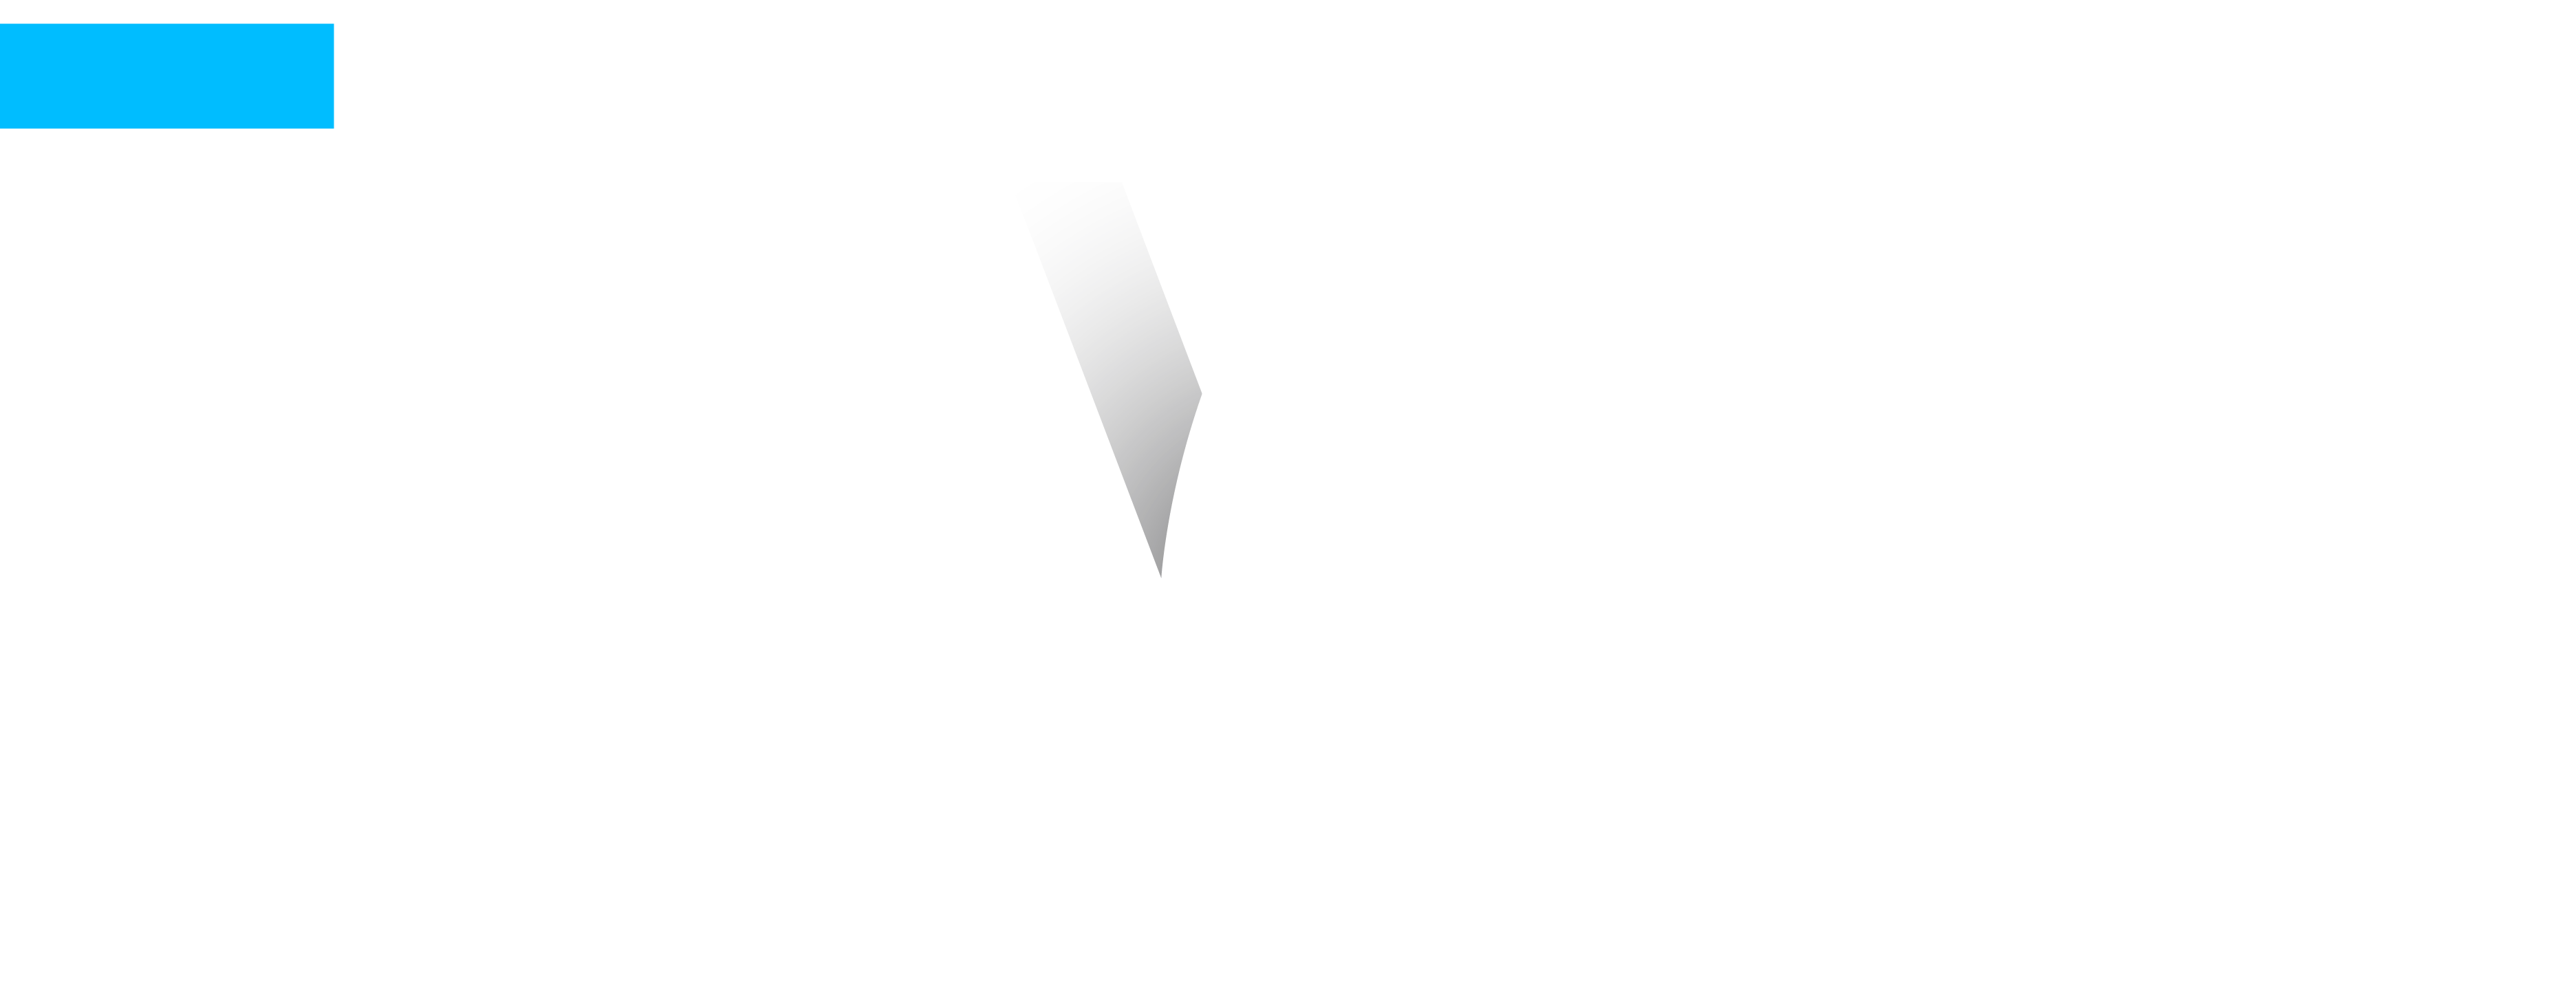 Elevate Financial Training